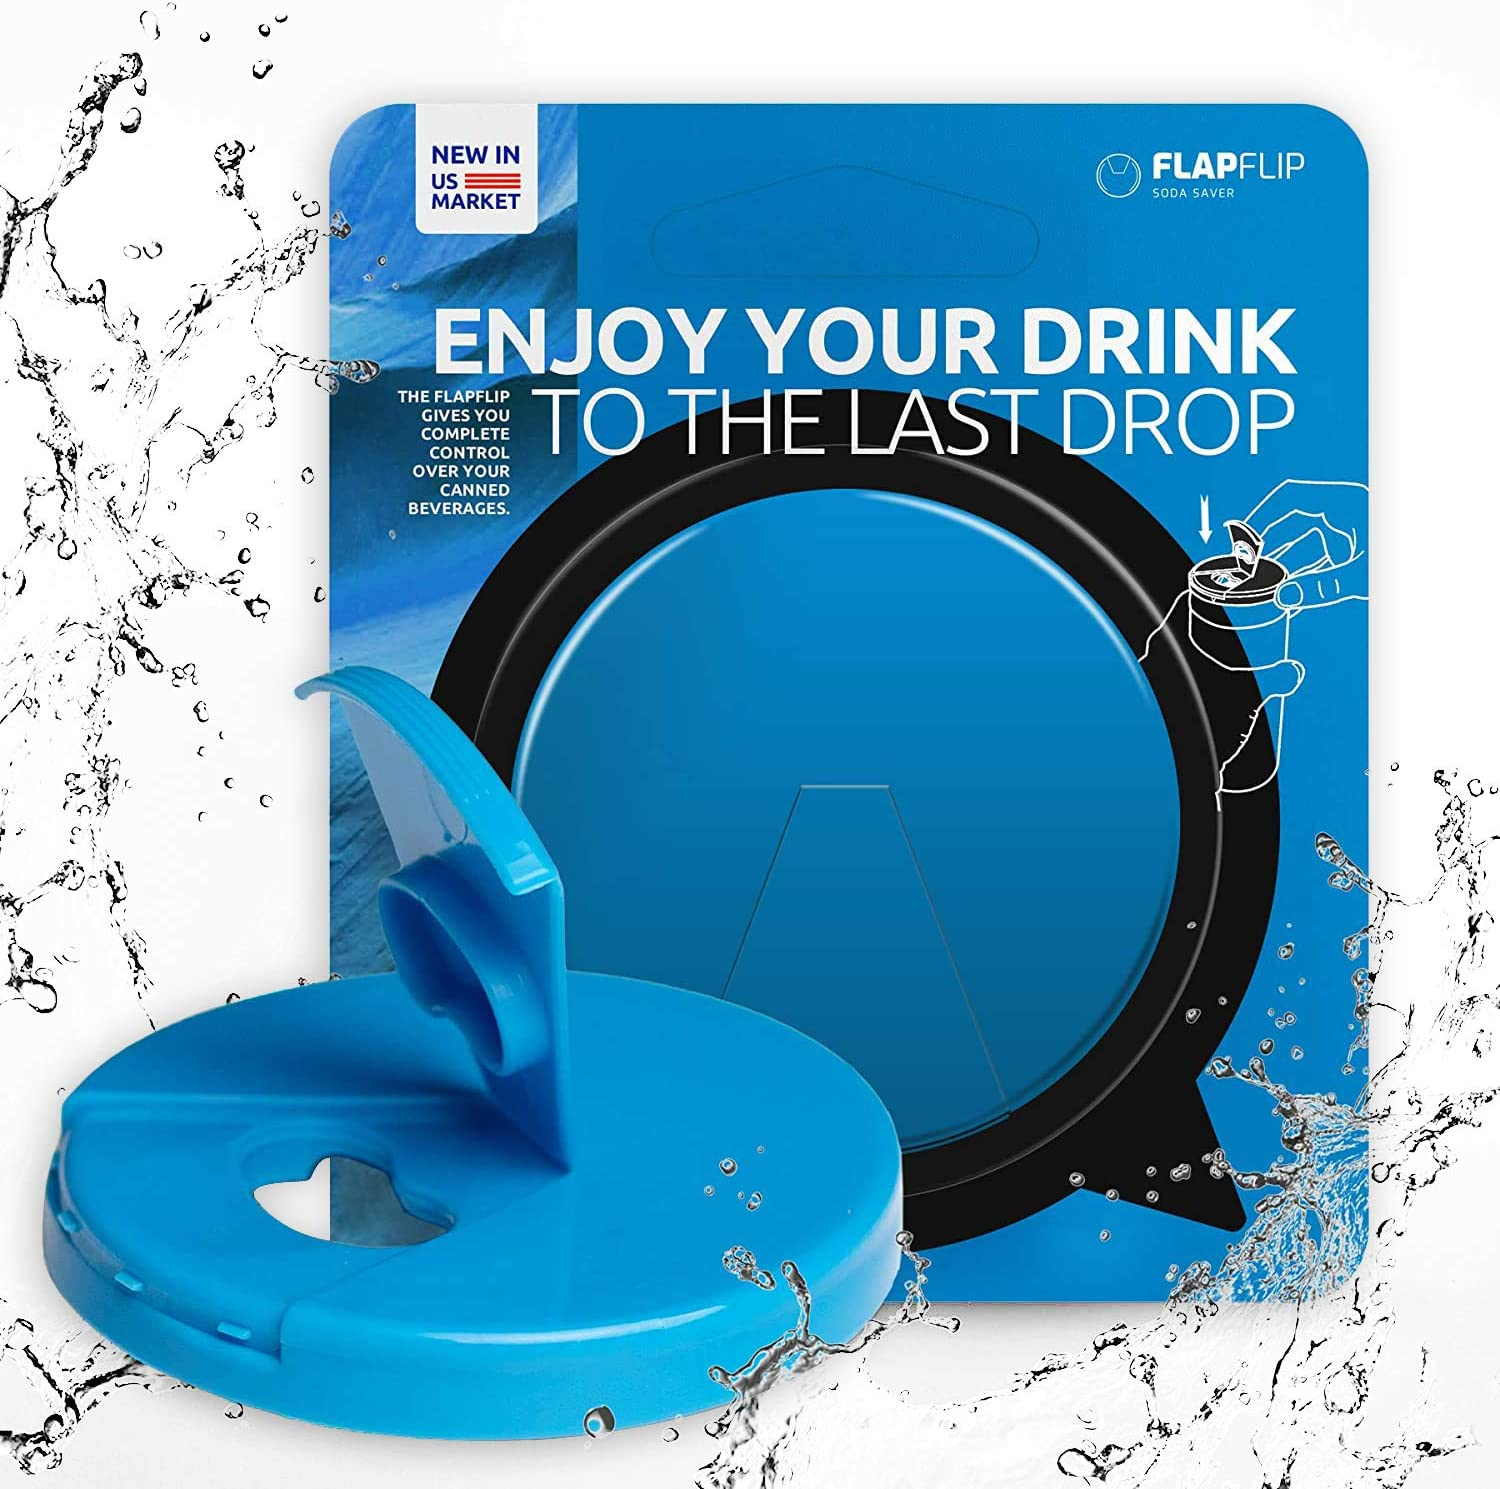 FlapFlip Premium Soda Can Lids – Reusable Beer & Pop Can Covers - PREMIUM Product - Fits on most of 12 oz - 16 oz Can - Available in 5 Fashionable Trend Colors - China FREE (Deep Sky Blue)